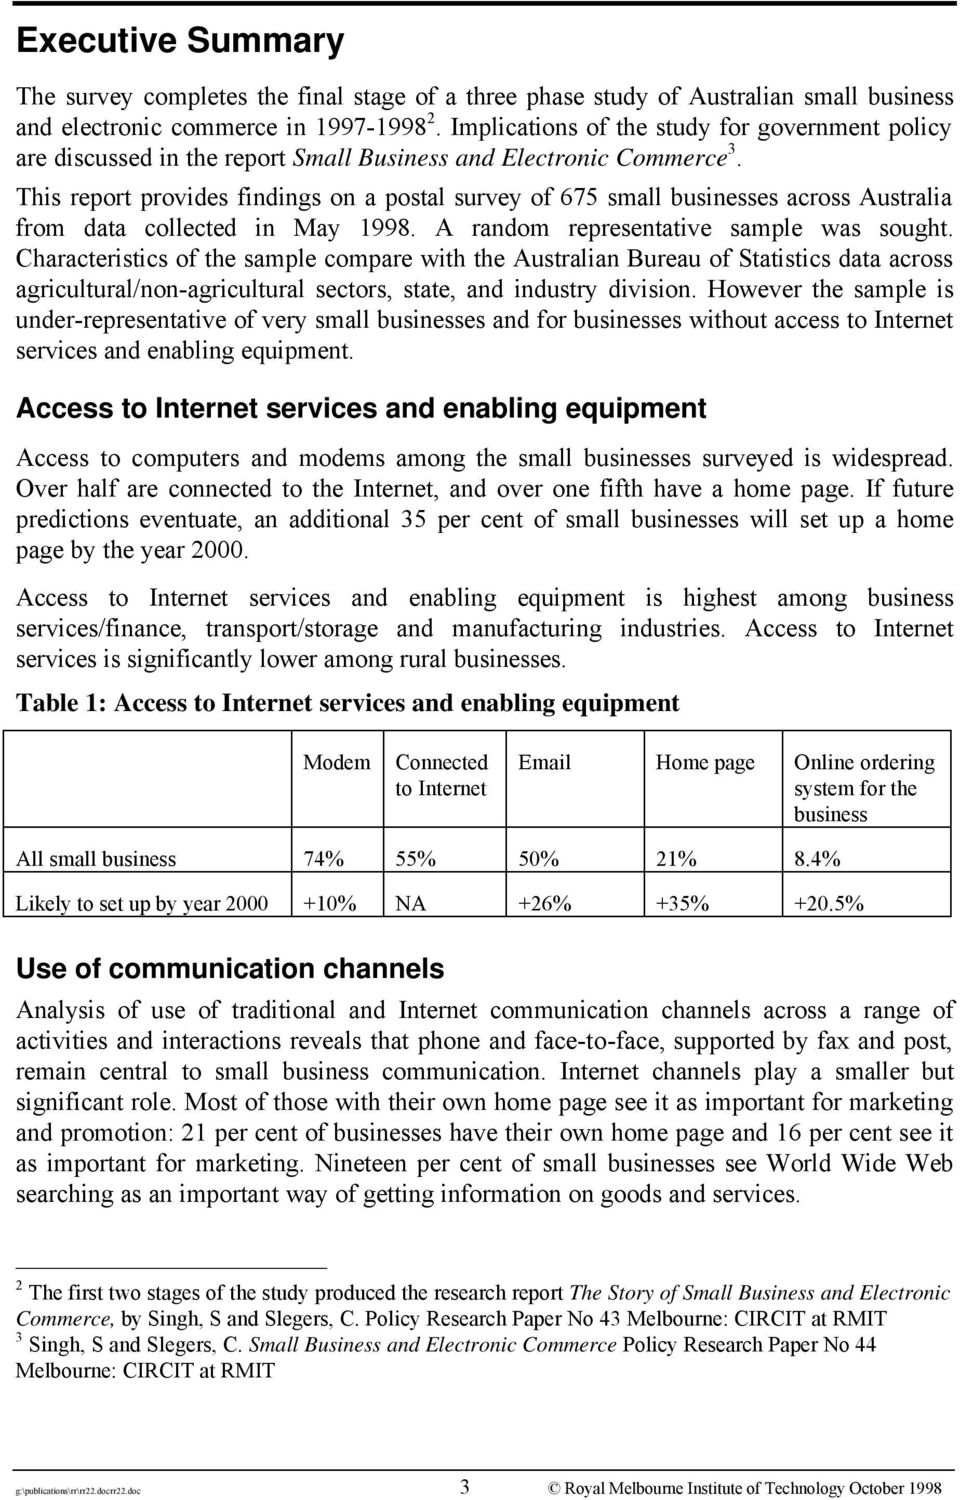 This report provides findings on a postal survey of 675 small businesses across Australia from data collected in May 1998. A random representative sample was sought.